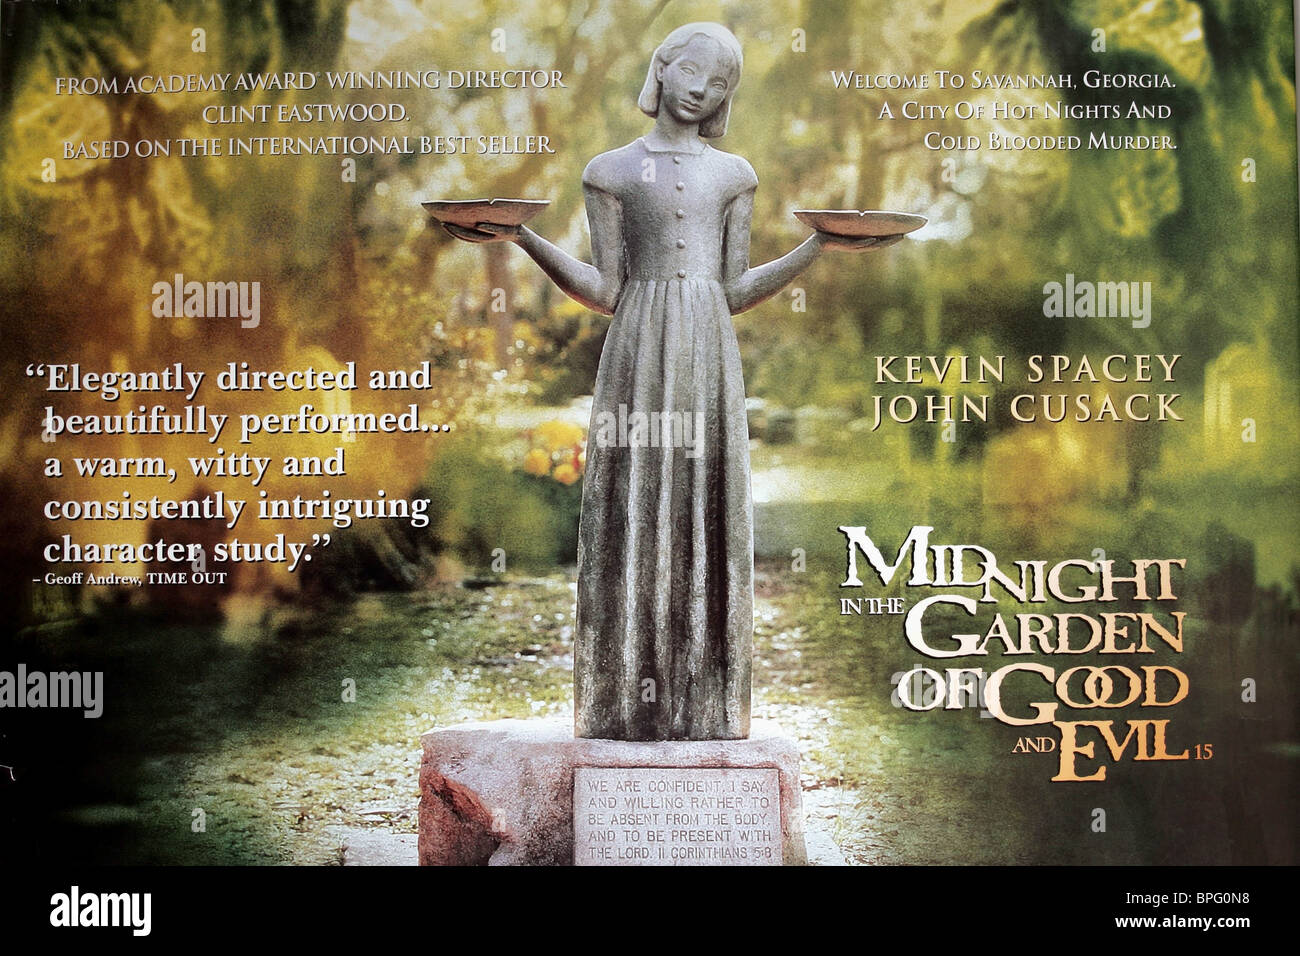 Film Poster Midnight In The Garden Of Good And Evil 1997 Stock Photo Royalty Free Image